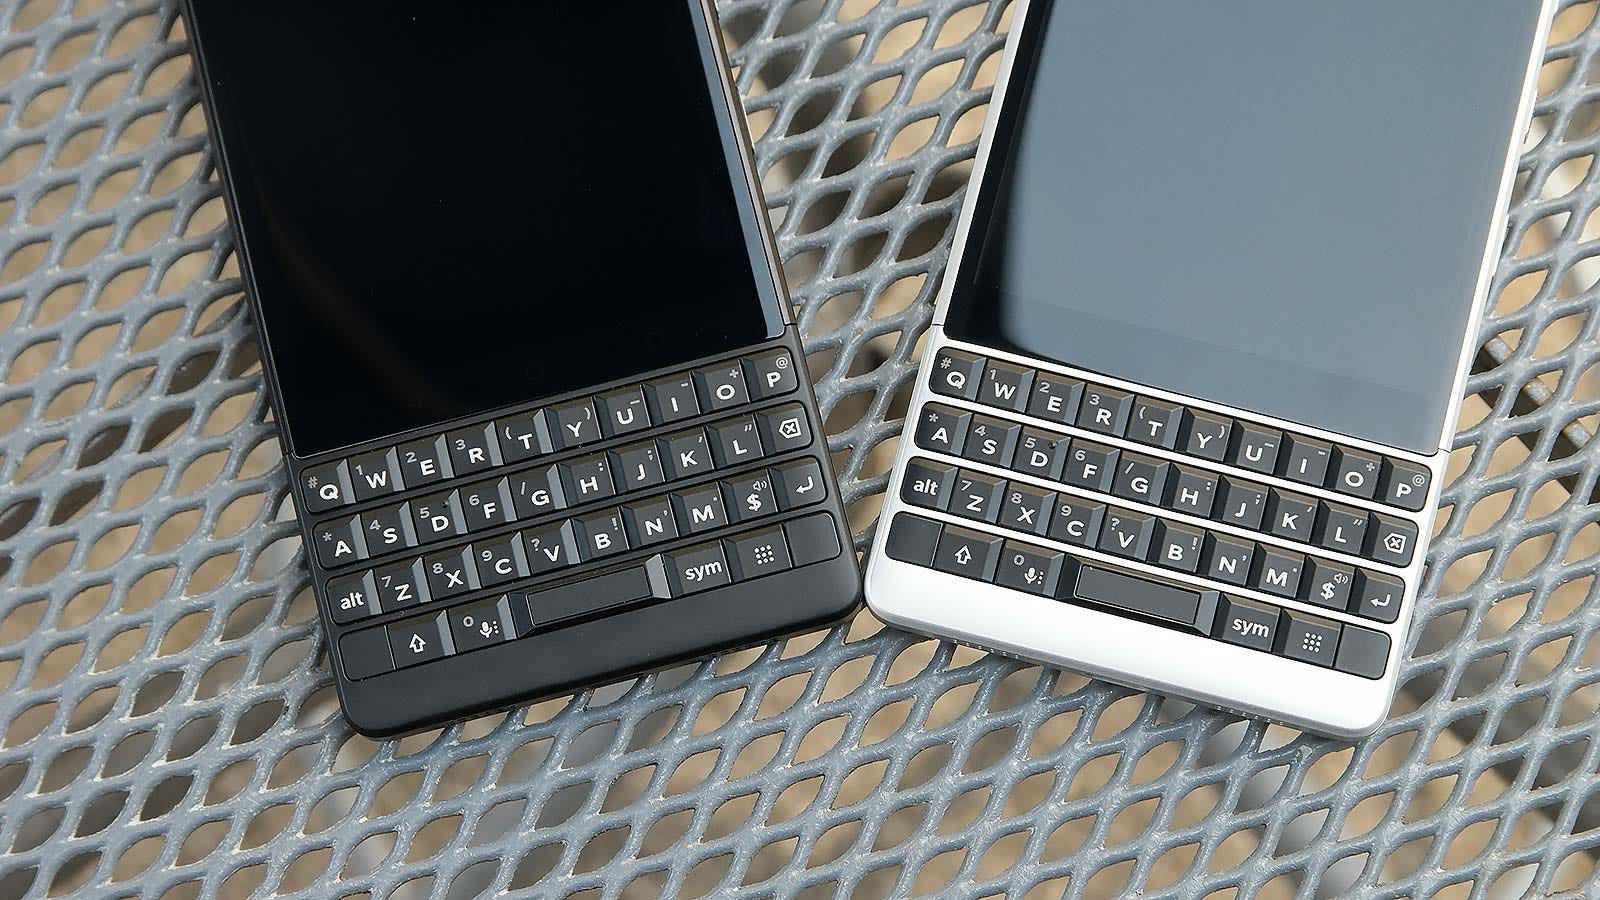 The Key2 is available in two colors: black or silver.